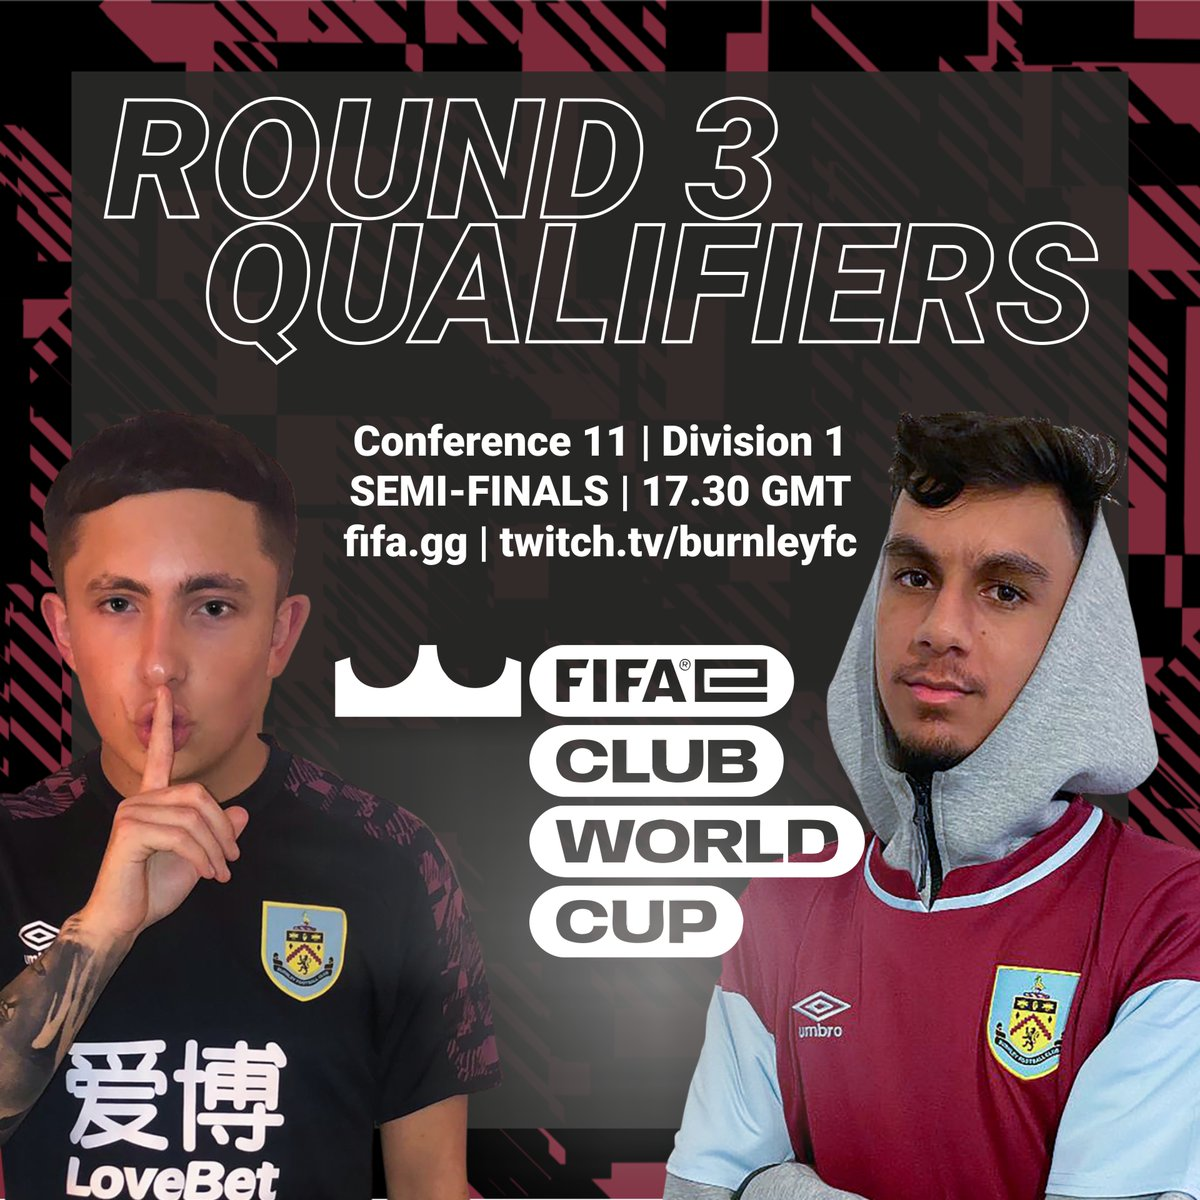 LIVE | Streaming at 5:30pm, our very own @BradColston_  and @Salman_Ahmad_19  compete in the in the @FIFAe  Club World Cup  @fifae  #FIFAeClubWorldCup